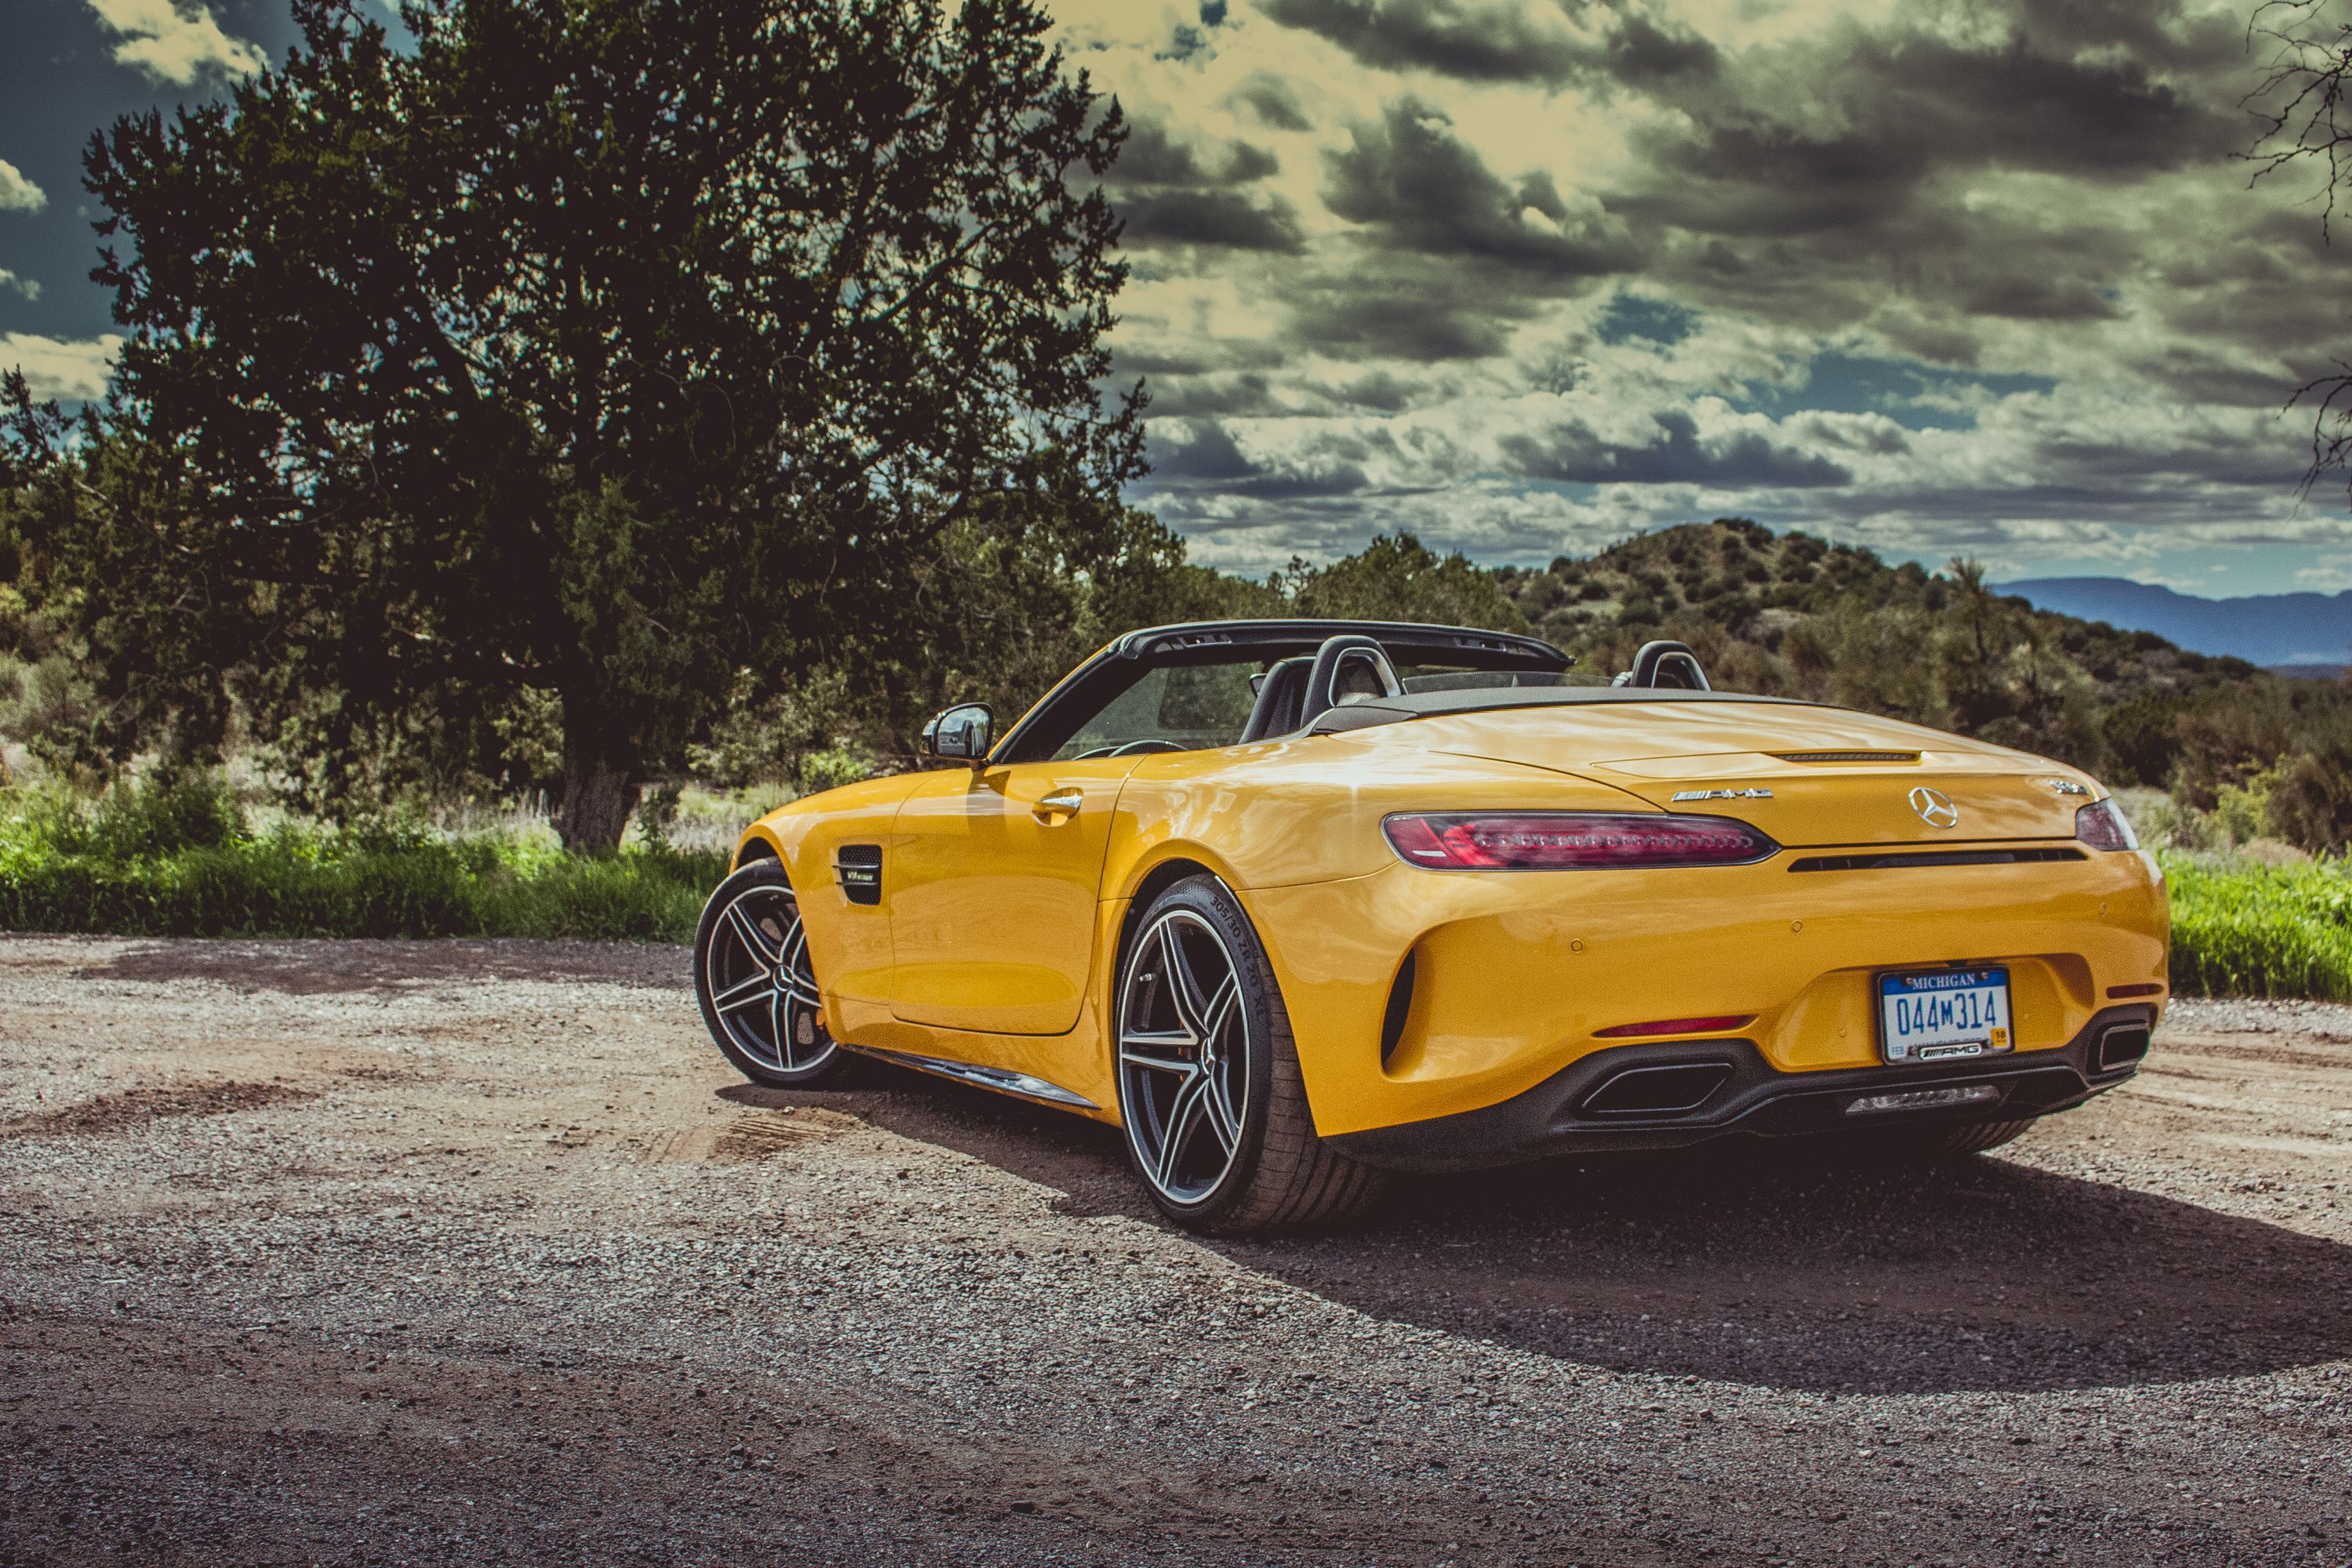 2018 mercedes amg gt roadster hd cars 4k wallpapers images backgrounds photos and pictures. Black Bedroom Furniture Sets. Home Design Ideas